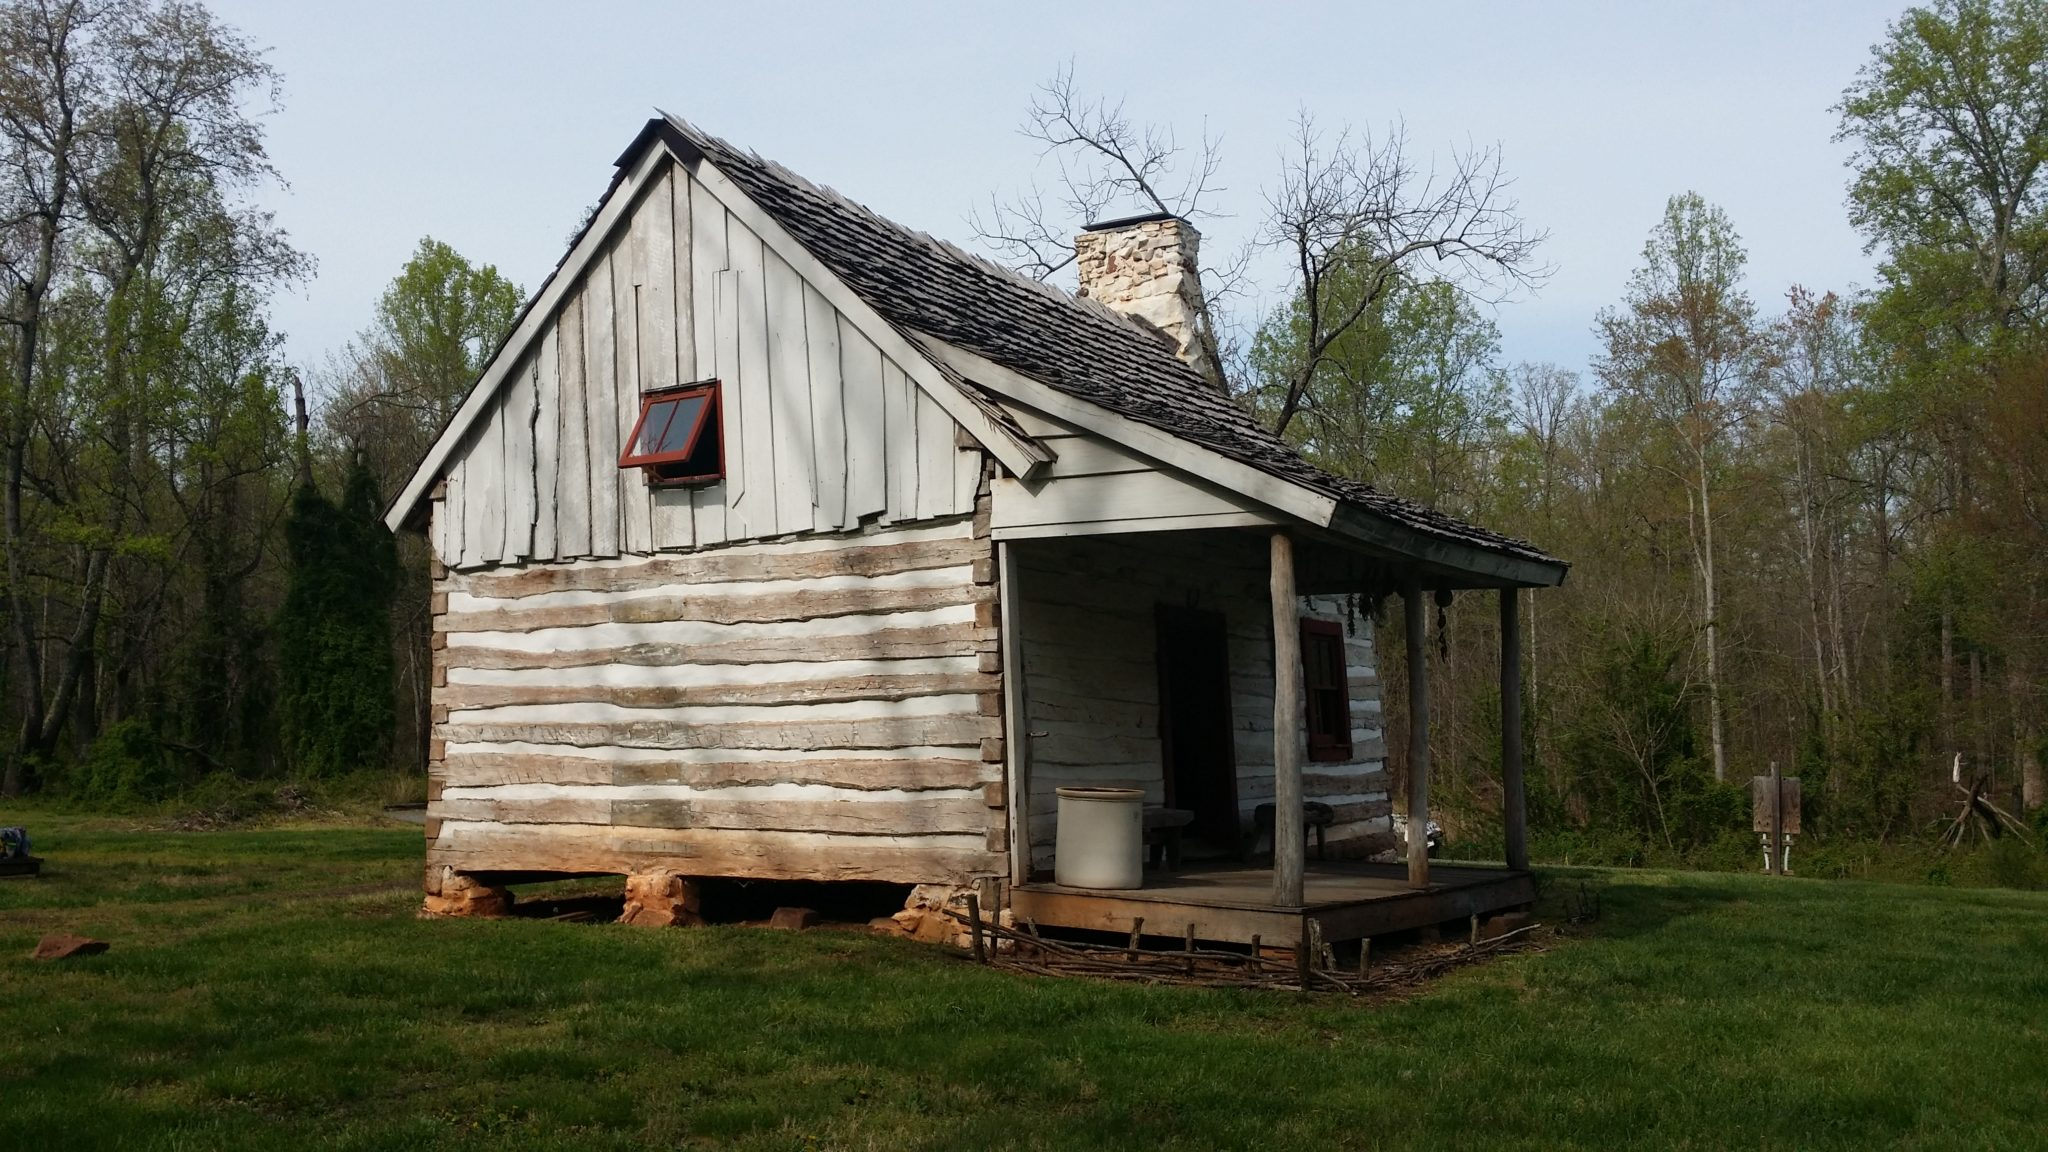 Superb img of The Dirt on President James Madison The Slave Dwelling Project with #2C2F16 color and 4128x2322 pixels